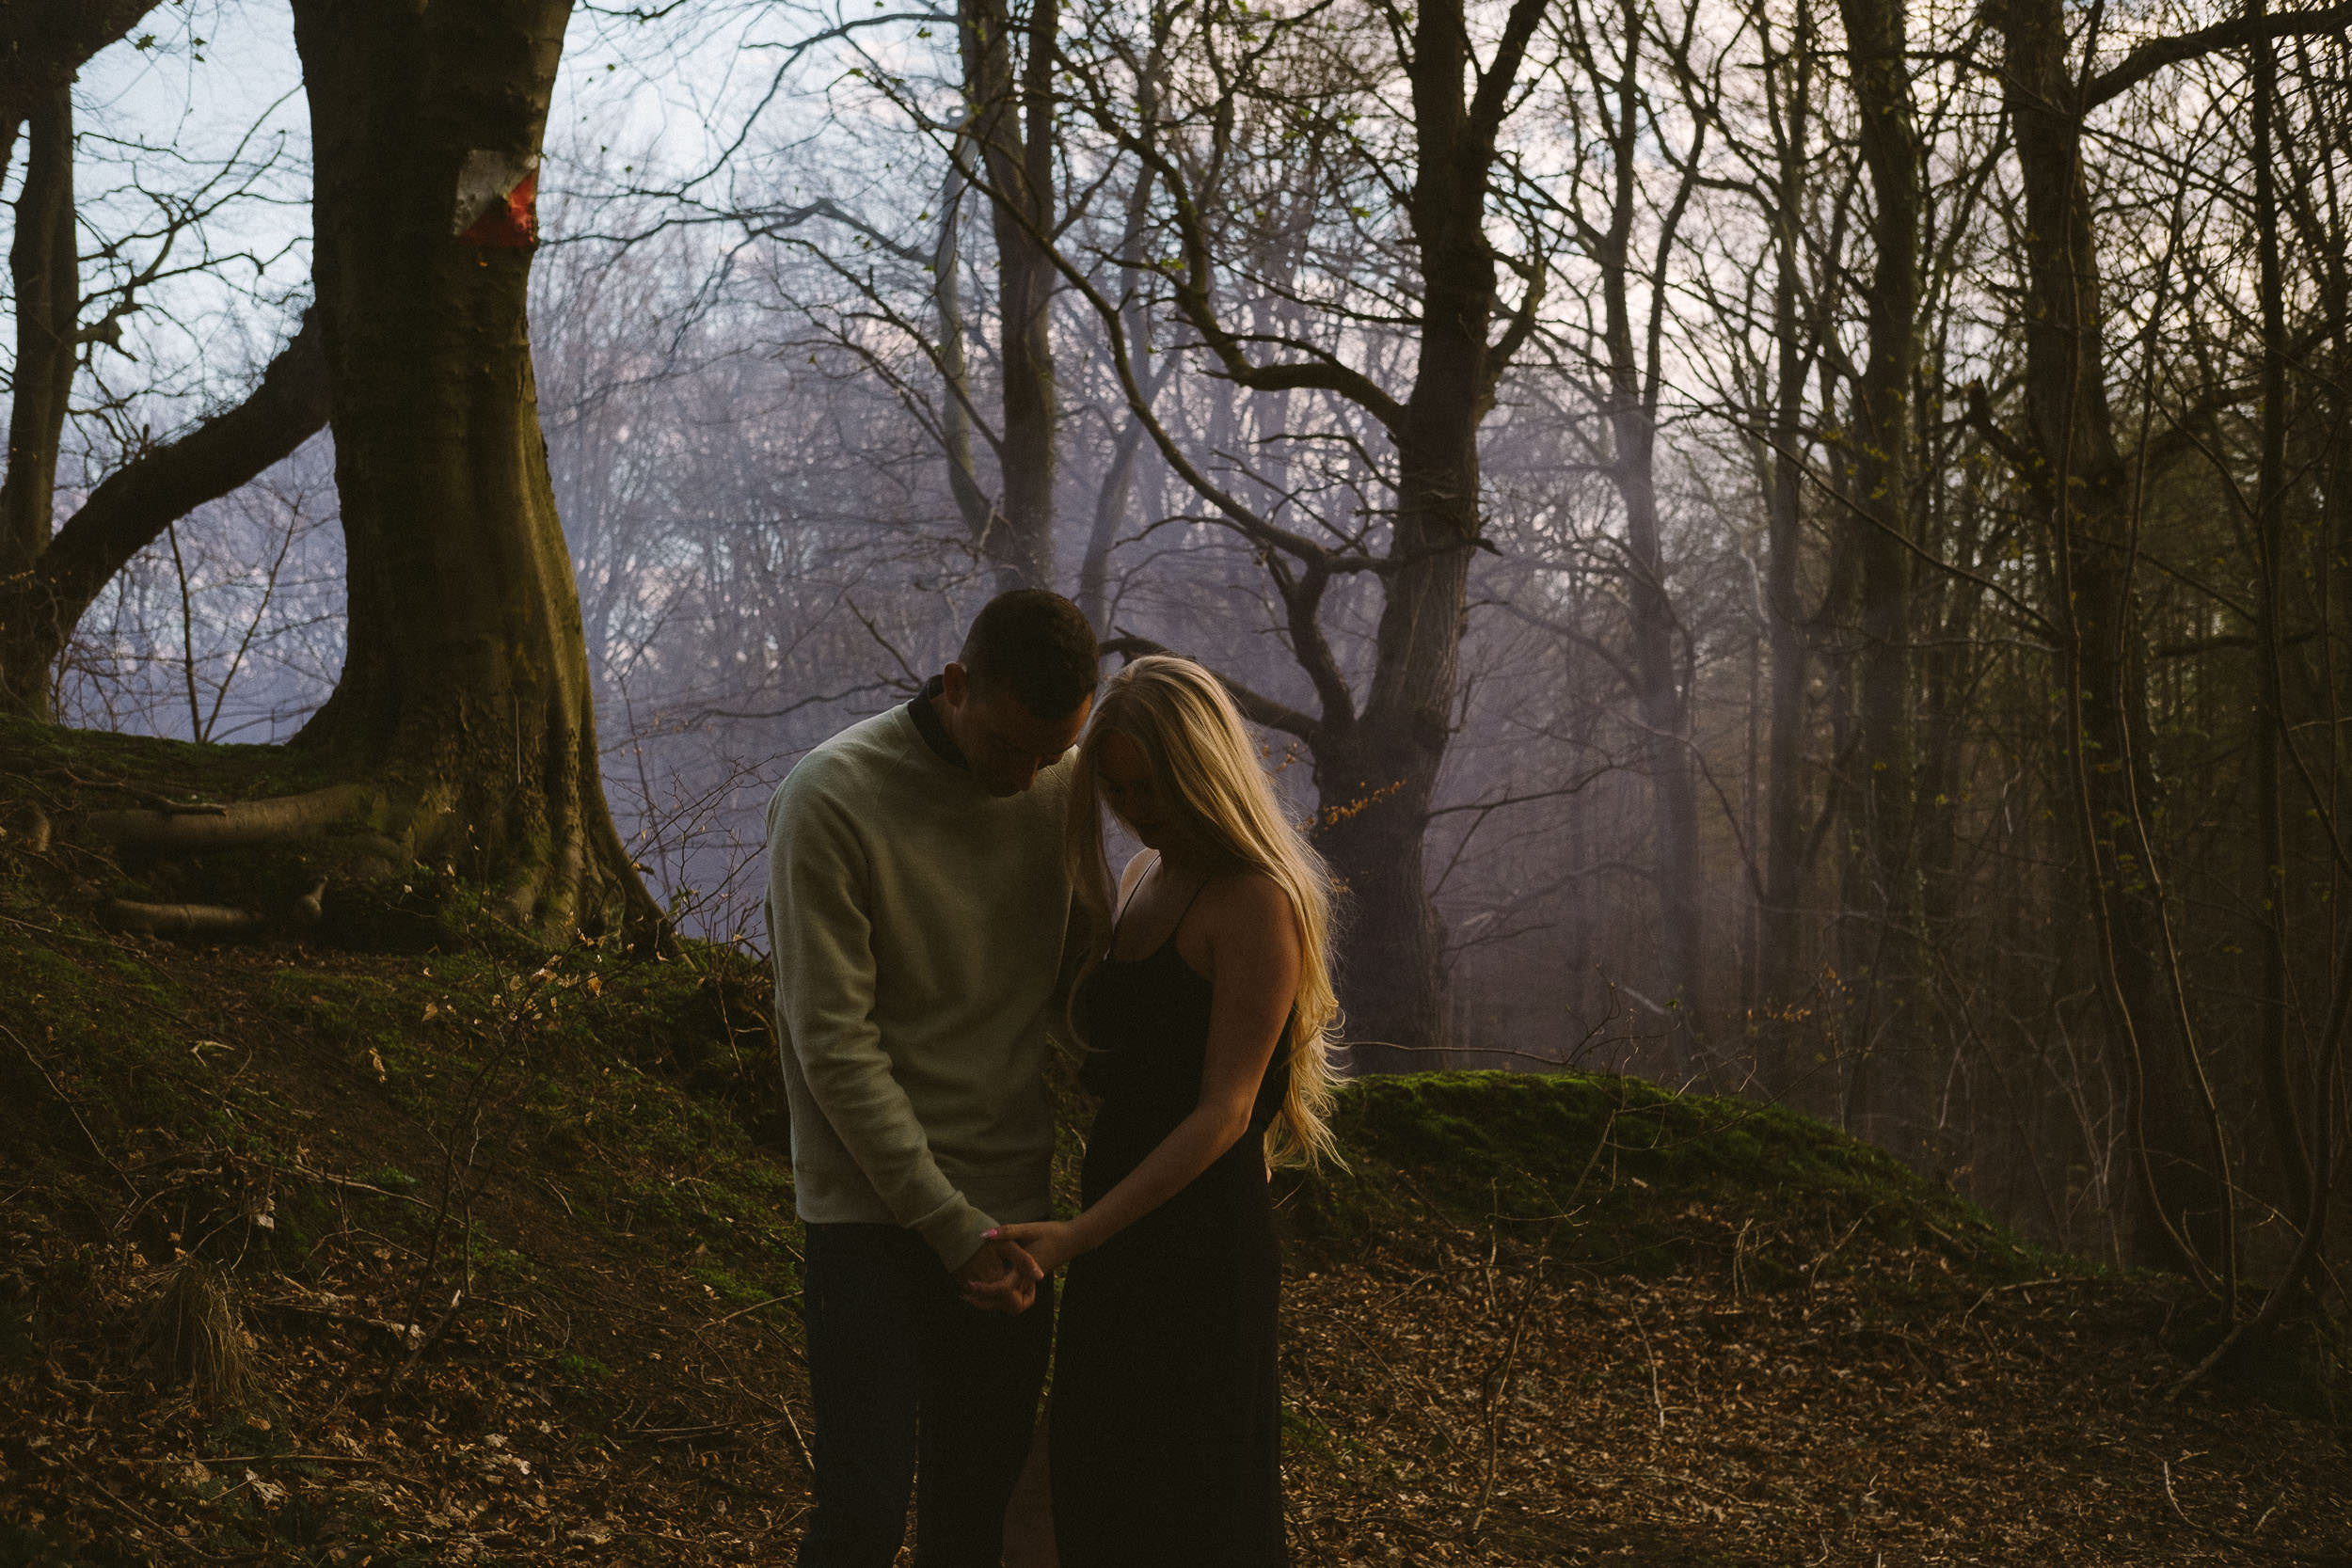 Couple hold hands while purple mist hangs in the air behind them in the forest